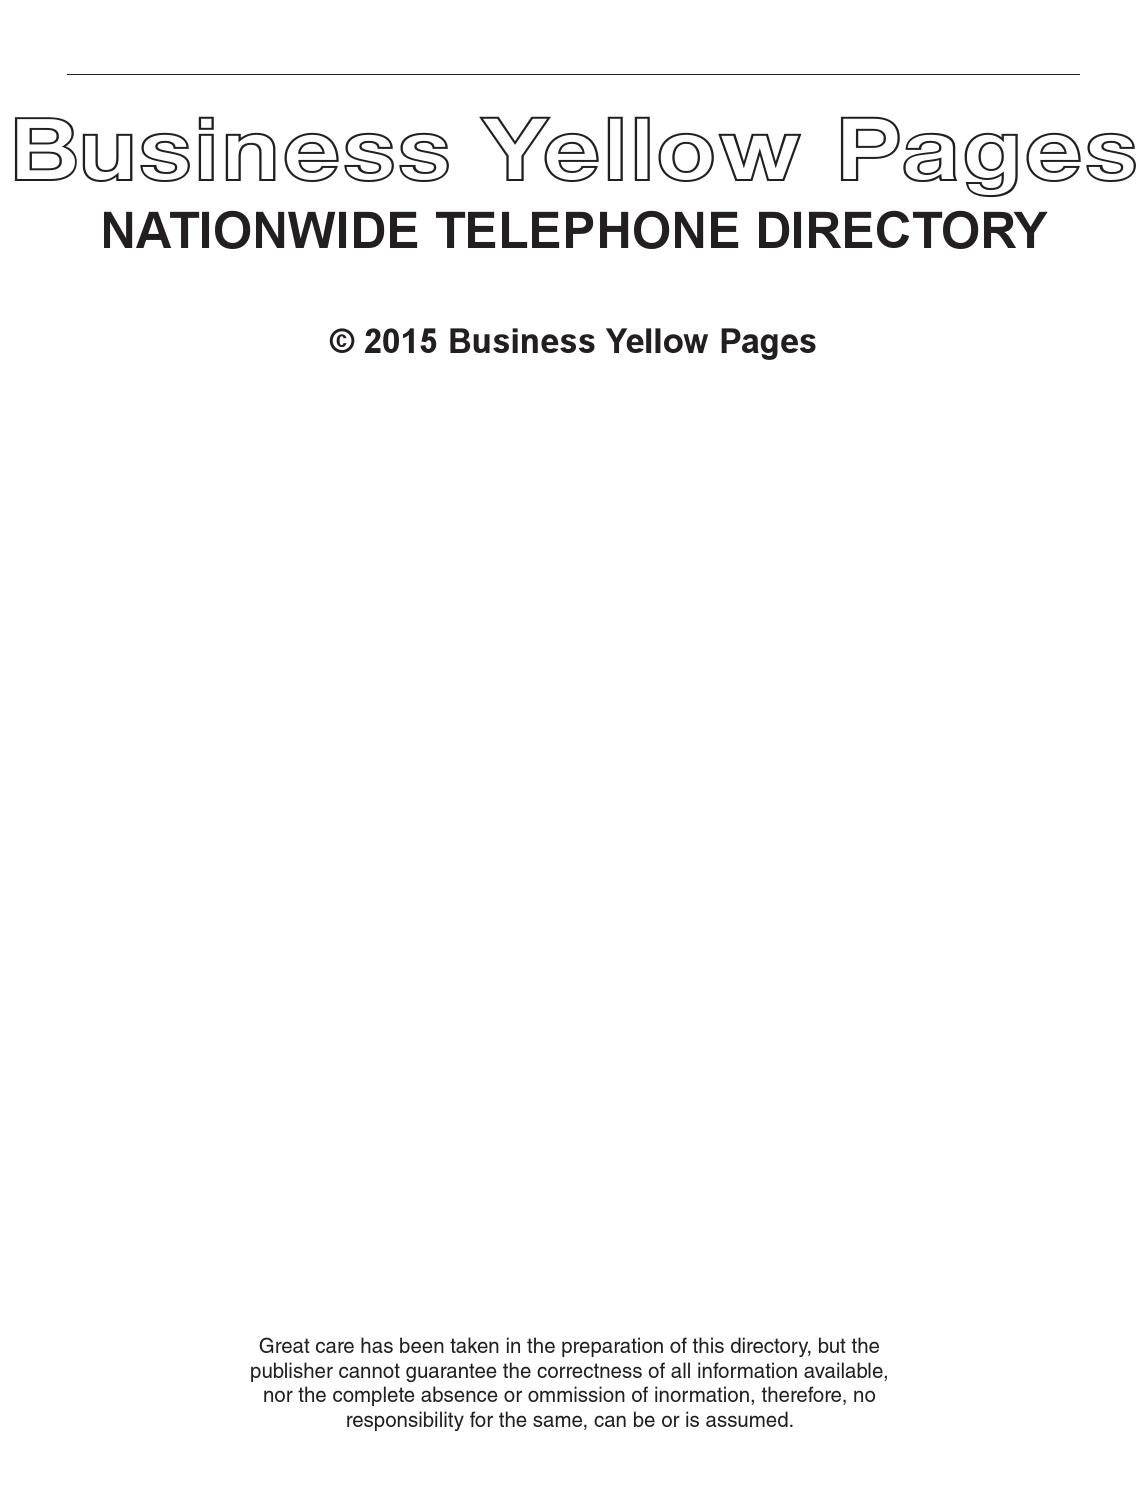 Byp June 2015 By Business Yellow Pages Usa Issuu Charles Jourdan 1005 2312 Silver